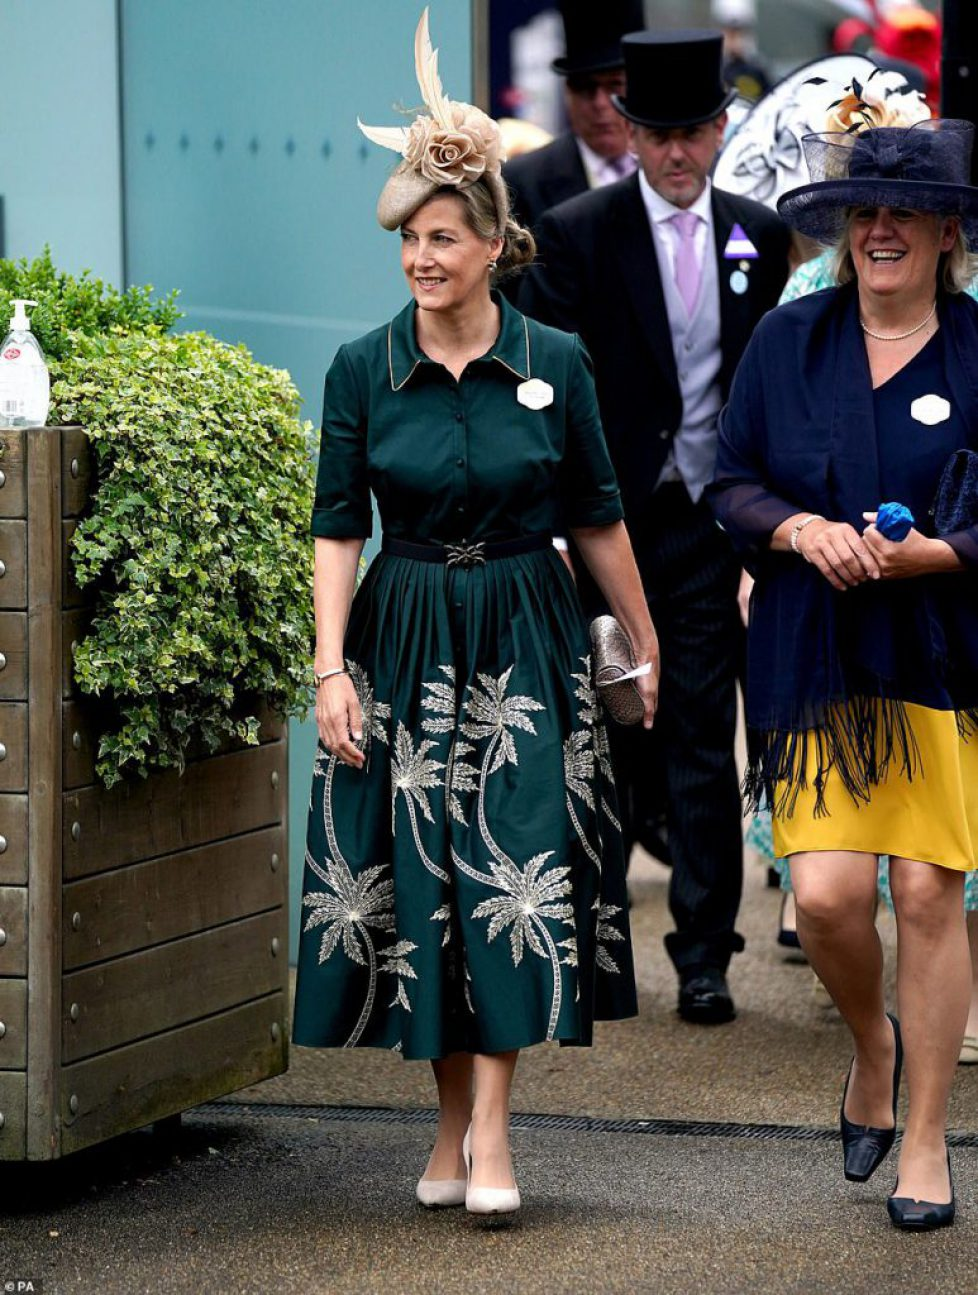 44341319-9696757-Forest_green_queen_Sophie_Wessex_looked_radiant_in_forest_green_-a-20_1623932005327